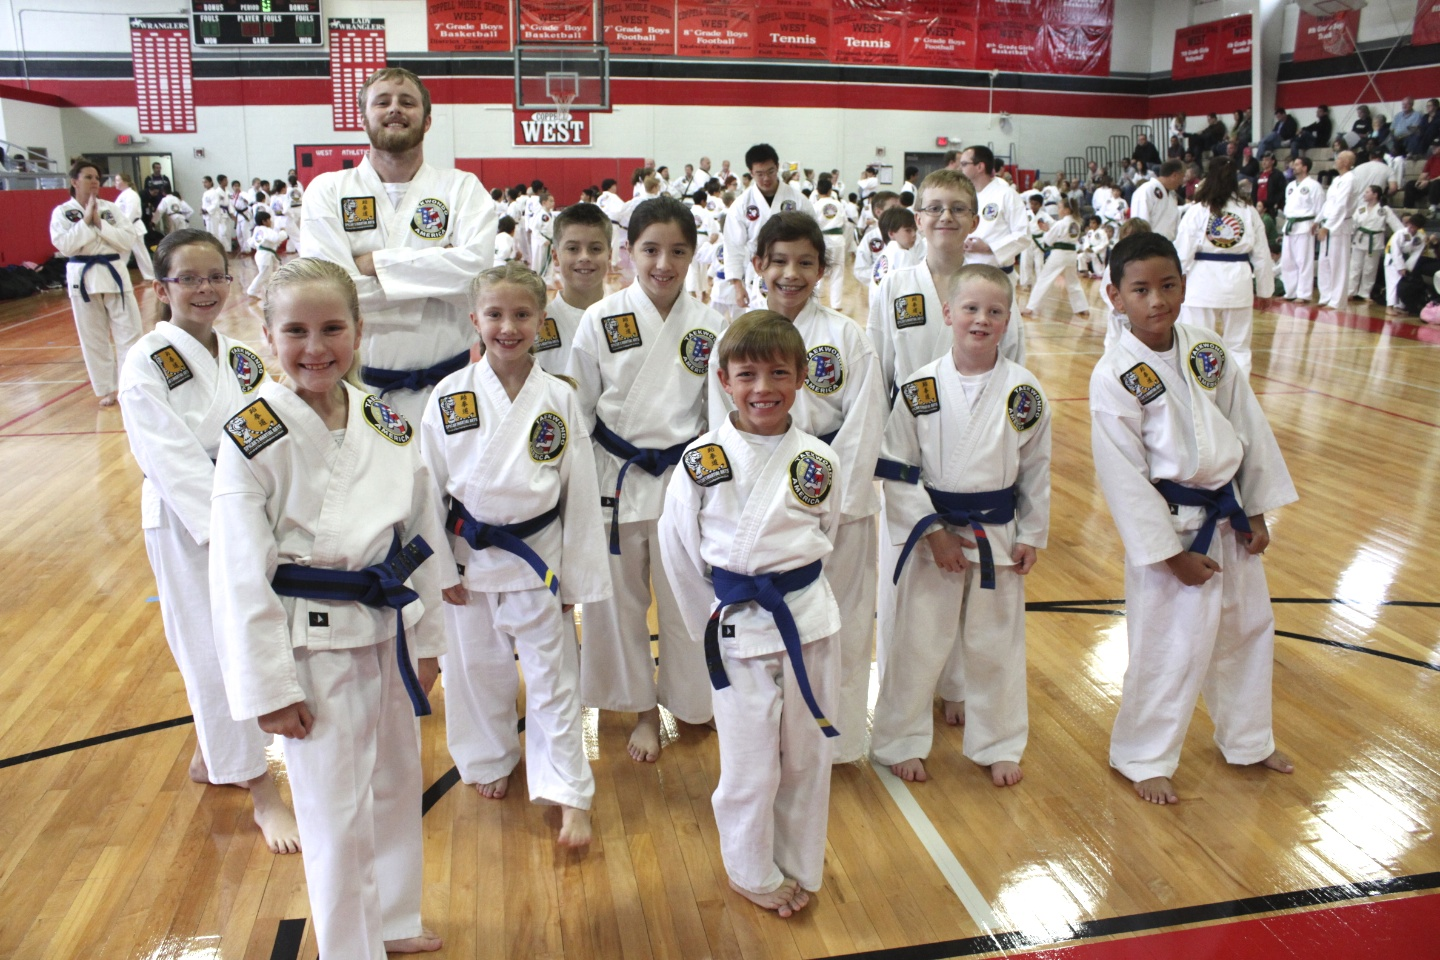 Some of our Blue Belt students. Good luck on your testing!